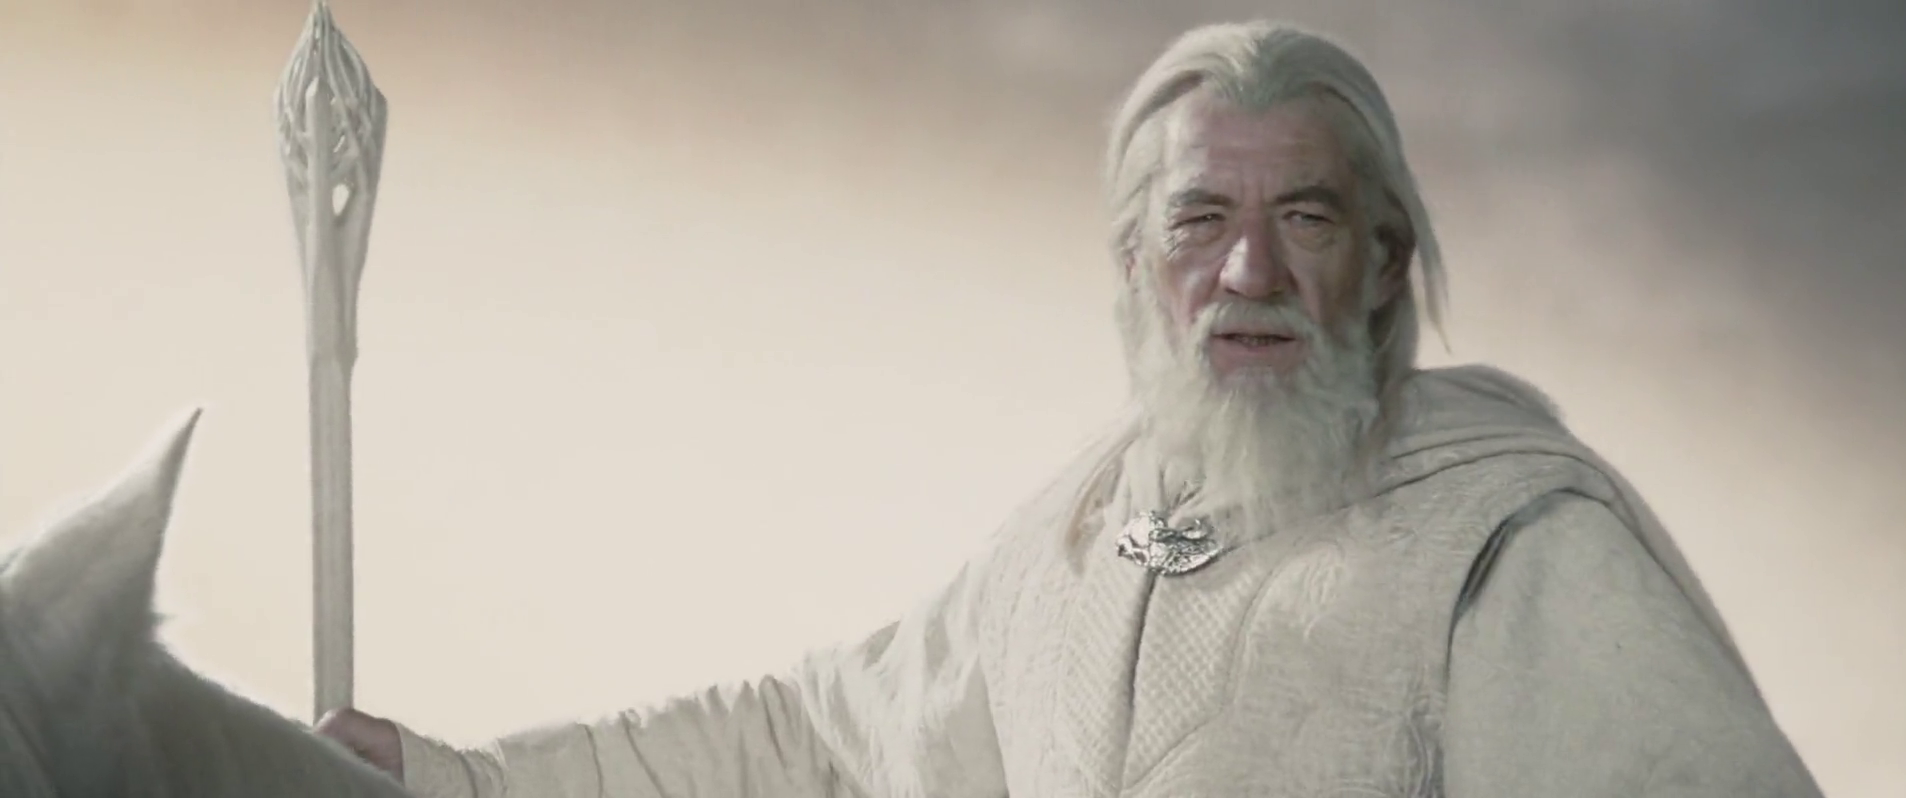 [Imagen: Gandalf_the_White_returns.png]